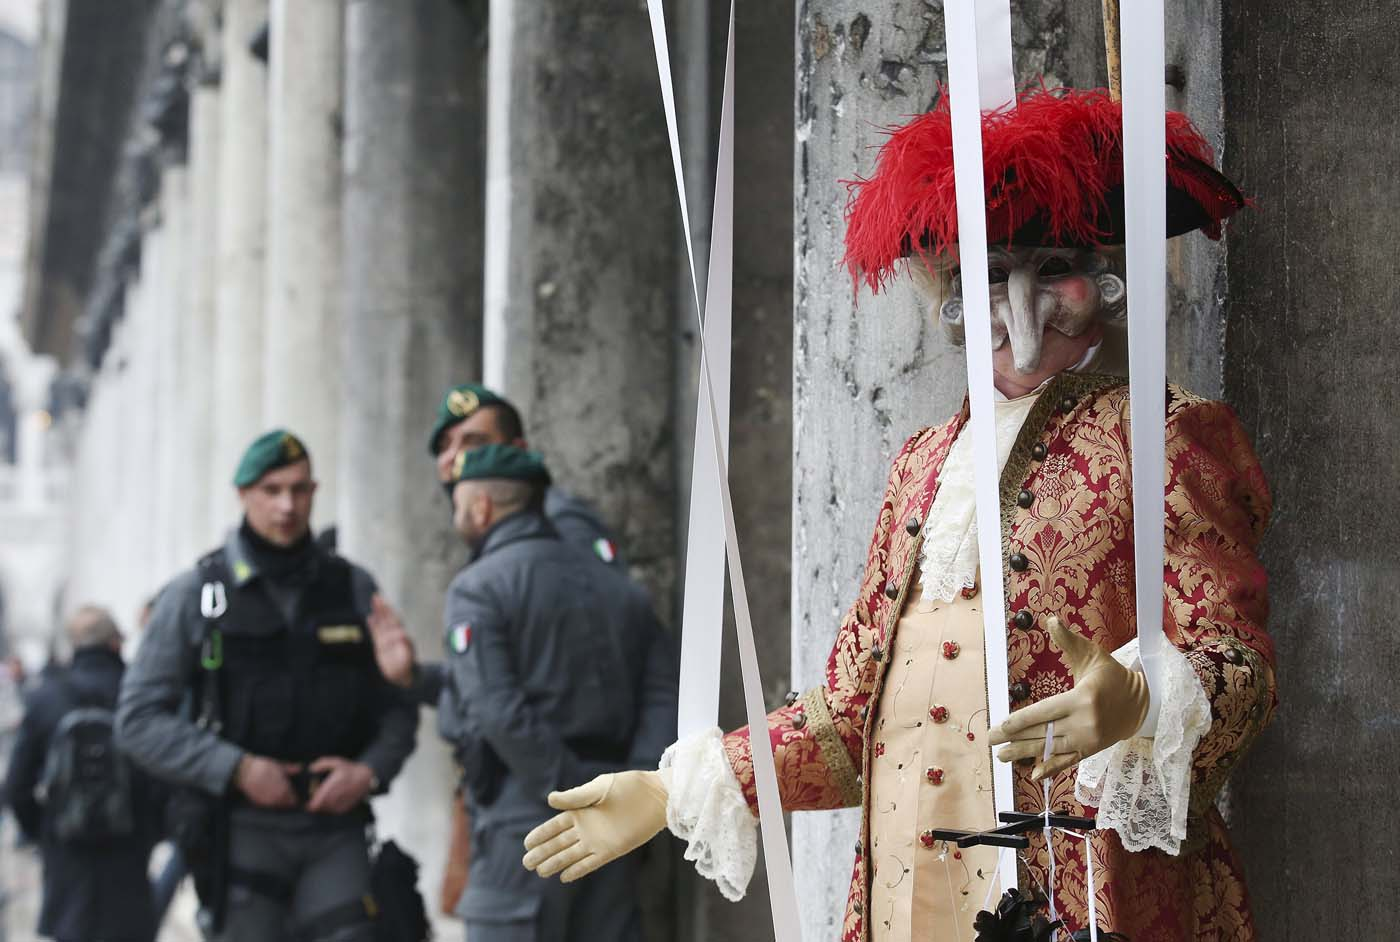 A masked reveller (R) poses in San Marco Piazza next to Italian Finance Police personnel during the Venice Carnival, January 30, 2016. REUTERS/Alessandro Bianchi